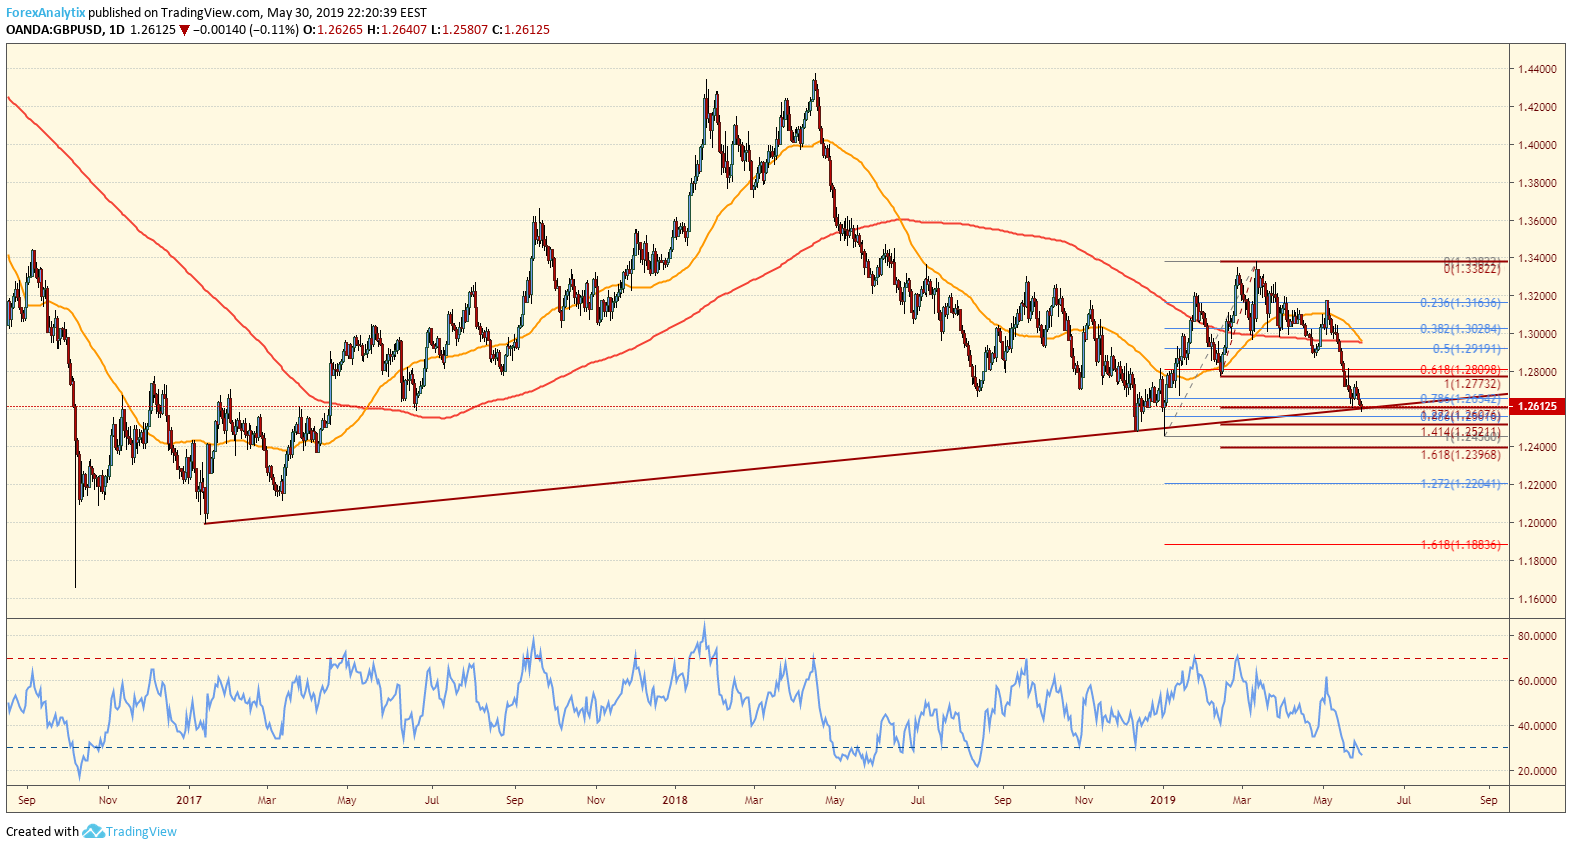 GBPUSD at support